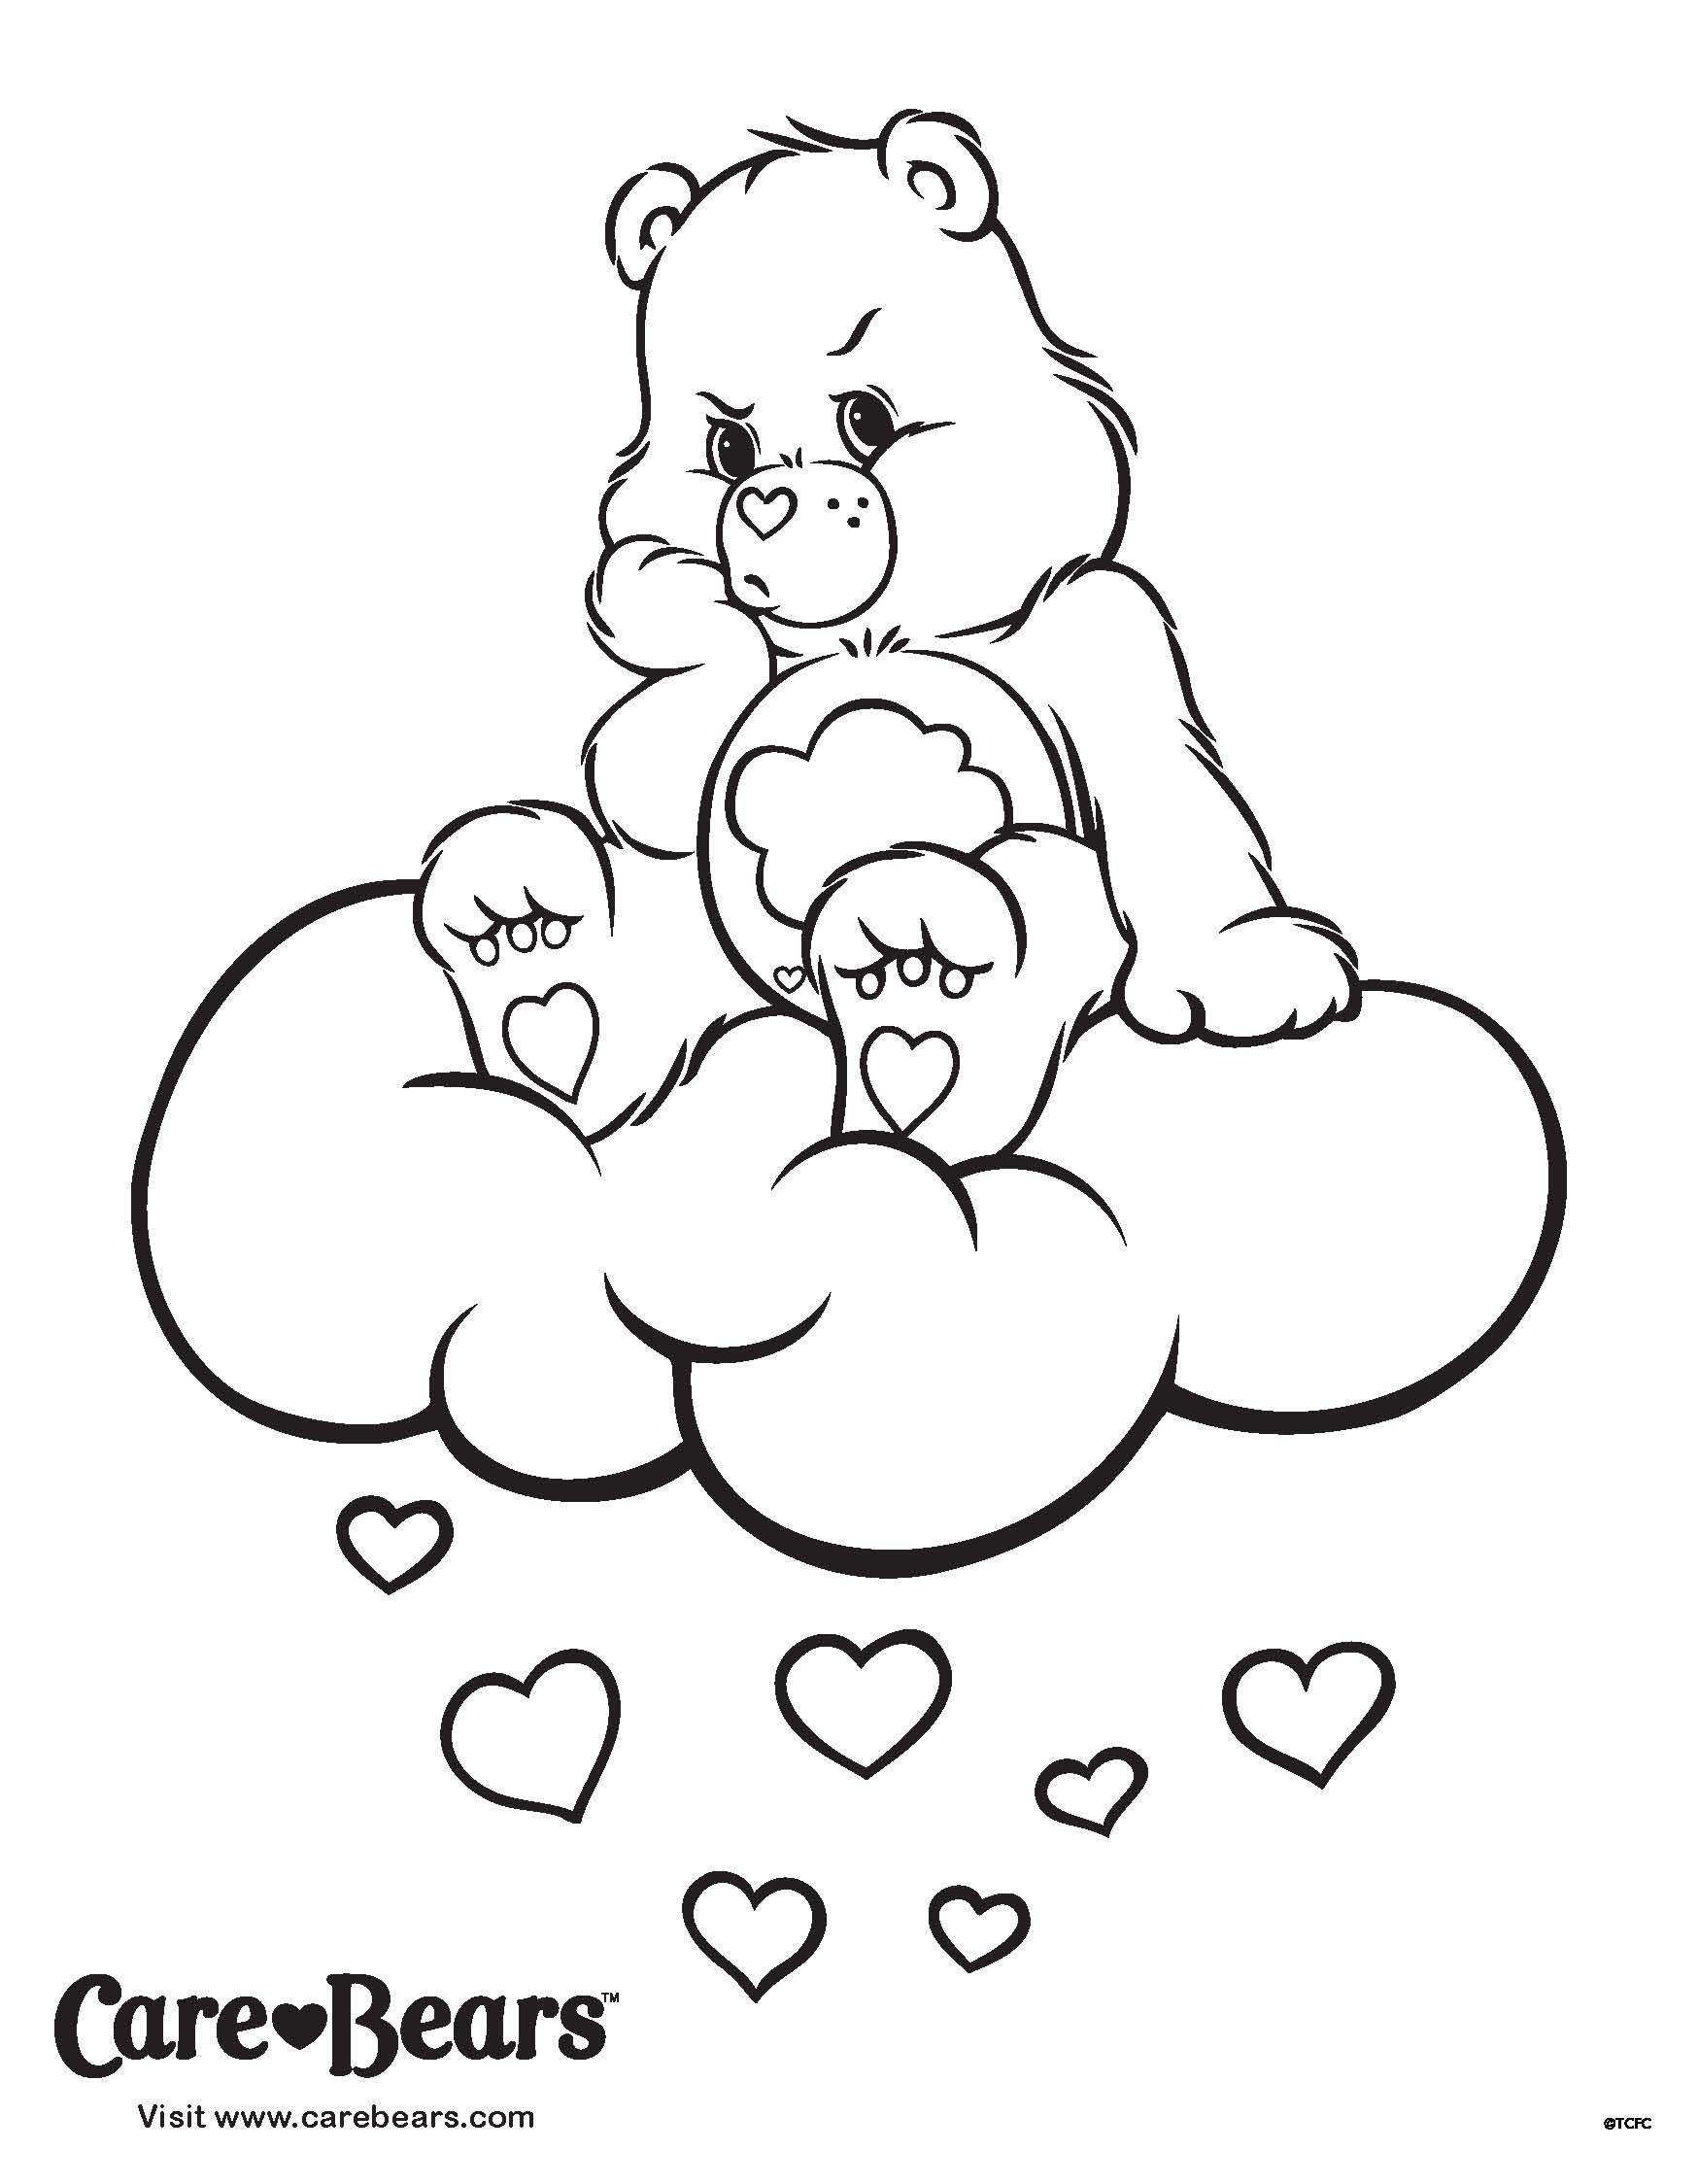 Care Bear Coloring Pages Care Bears Coloring Sheet Don T Let The Grumpies You Bear Coloring Pages Disney Coloring Pages Cute Coloring Pages